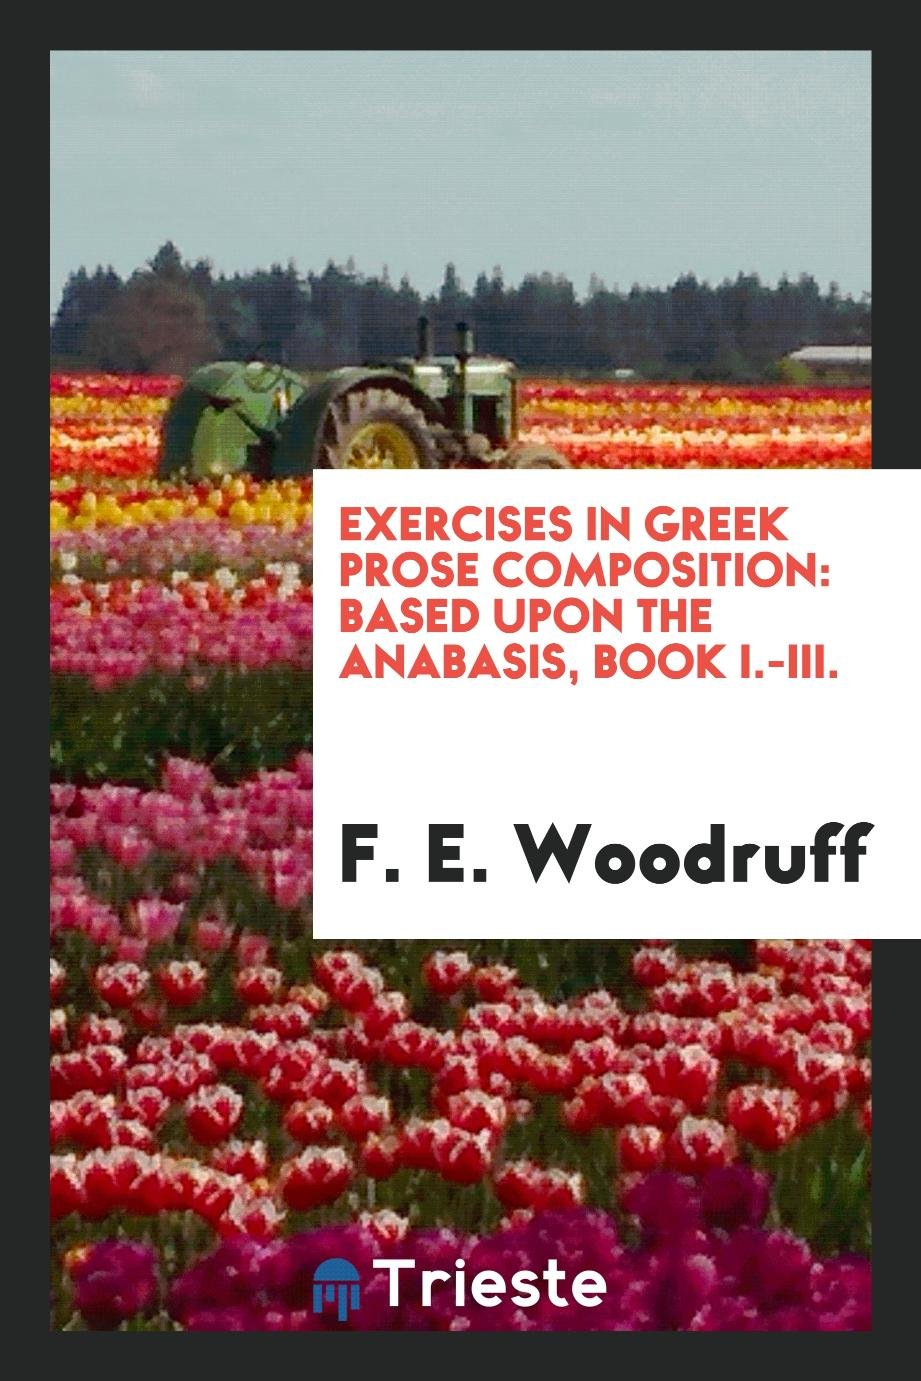 Exercises in Greek Prose Composition: Based upon the Anabasis, Book I.-III.